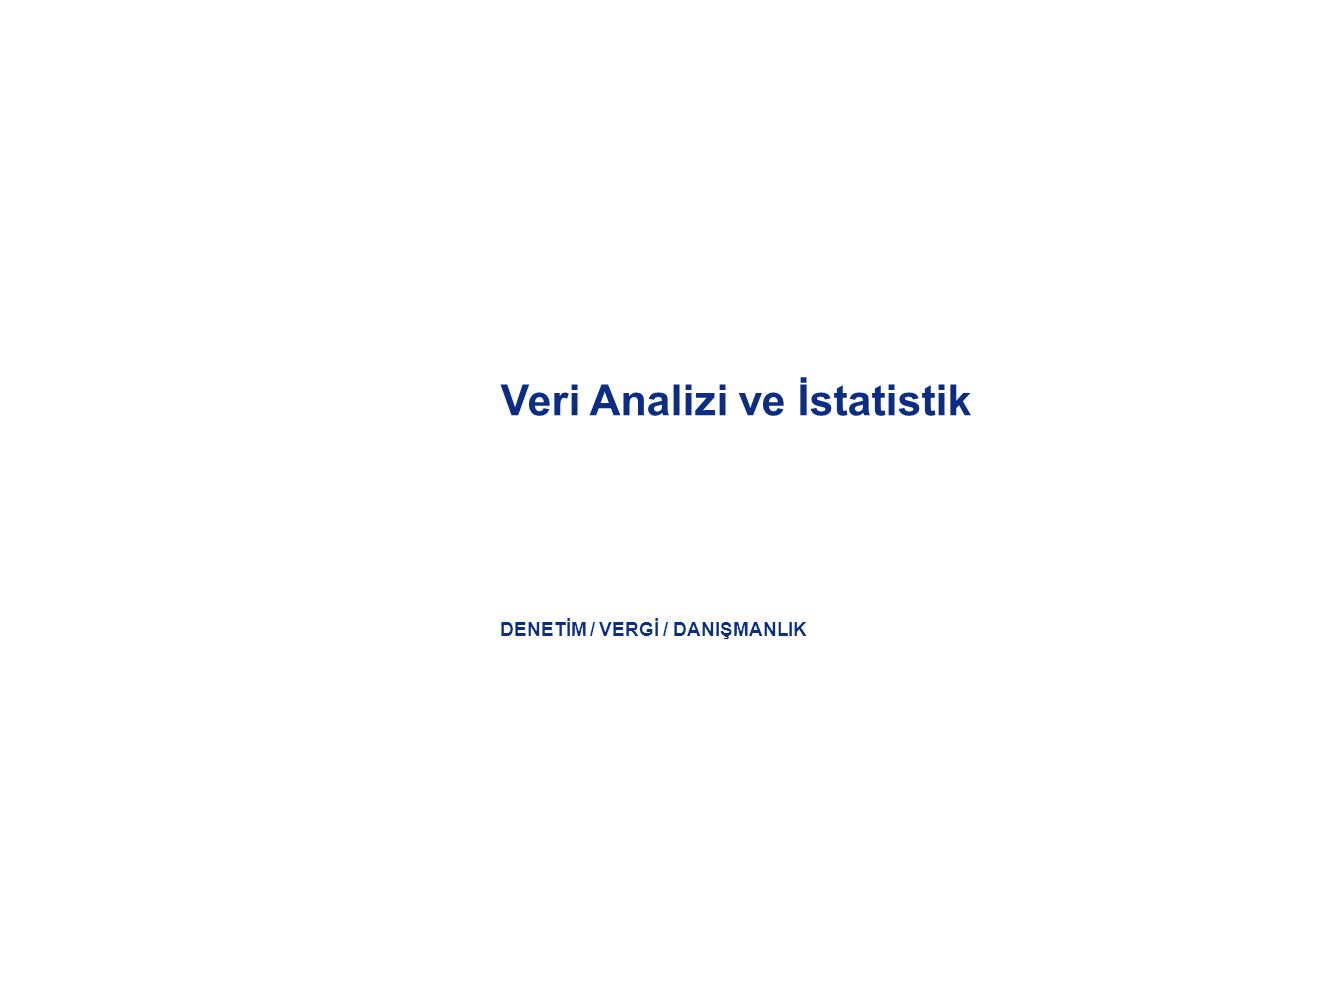 Veri Analizi ve İstatistik